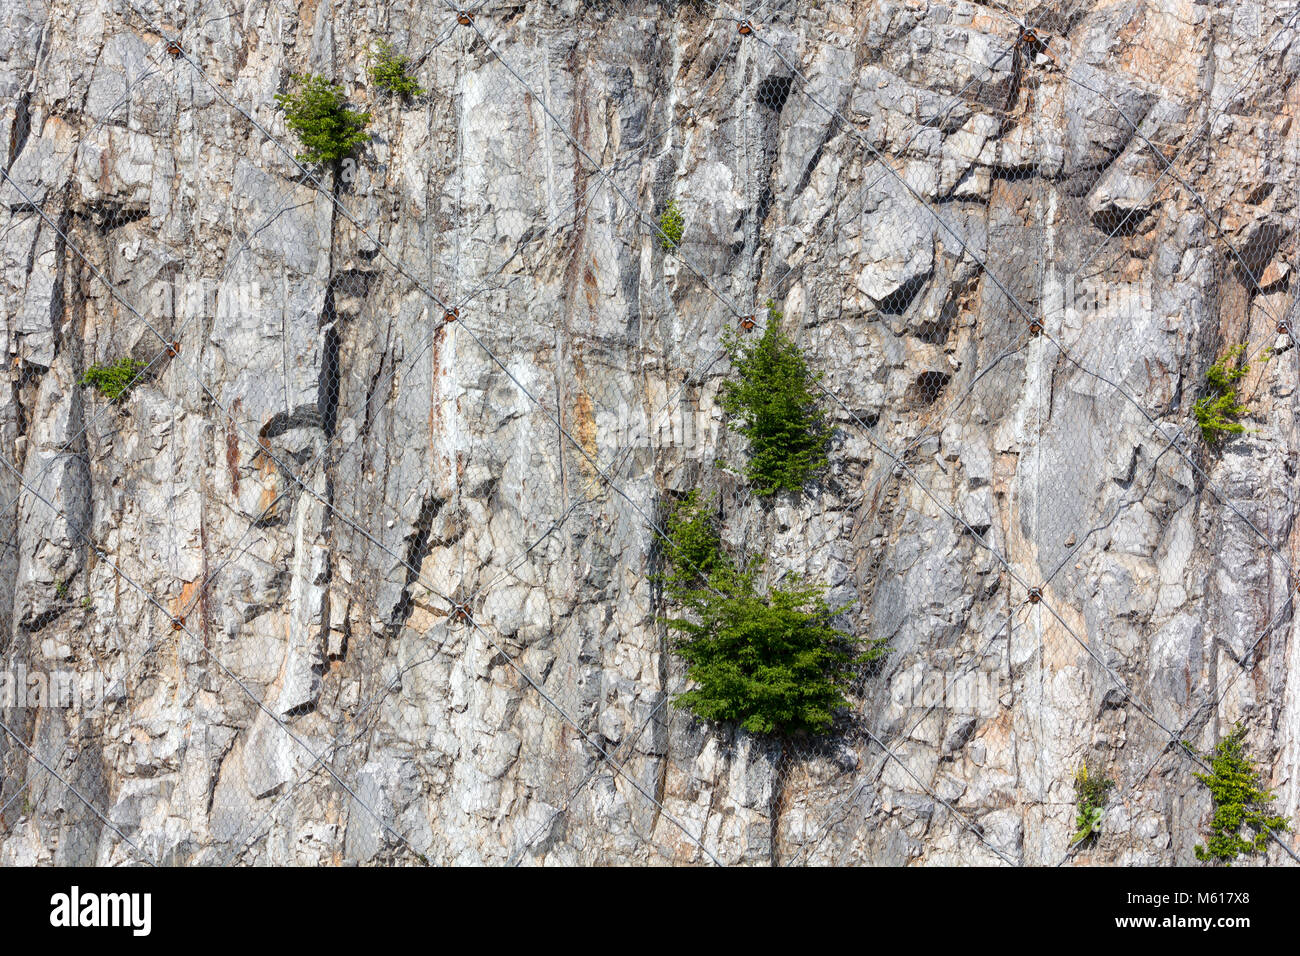 Karst rock face wrapped up in a wire mesh to contain the collapsing of stones Stock Photo